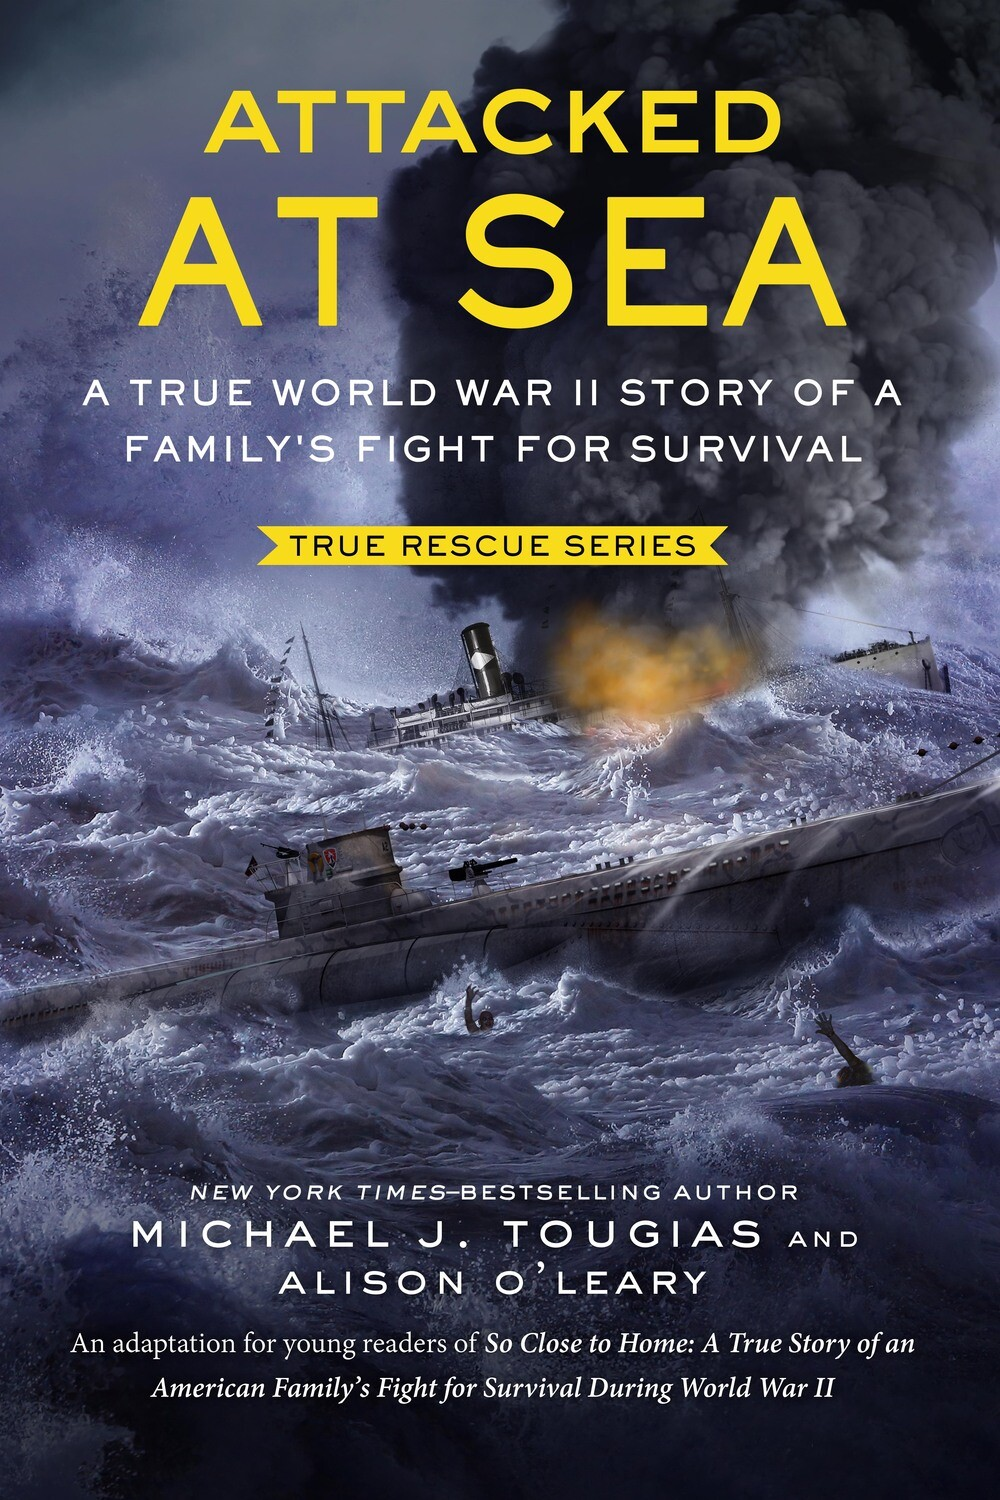 Attacked At Sea (Middle Reader, hardcover)